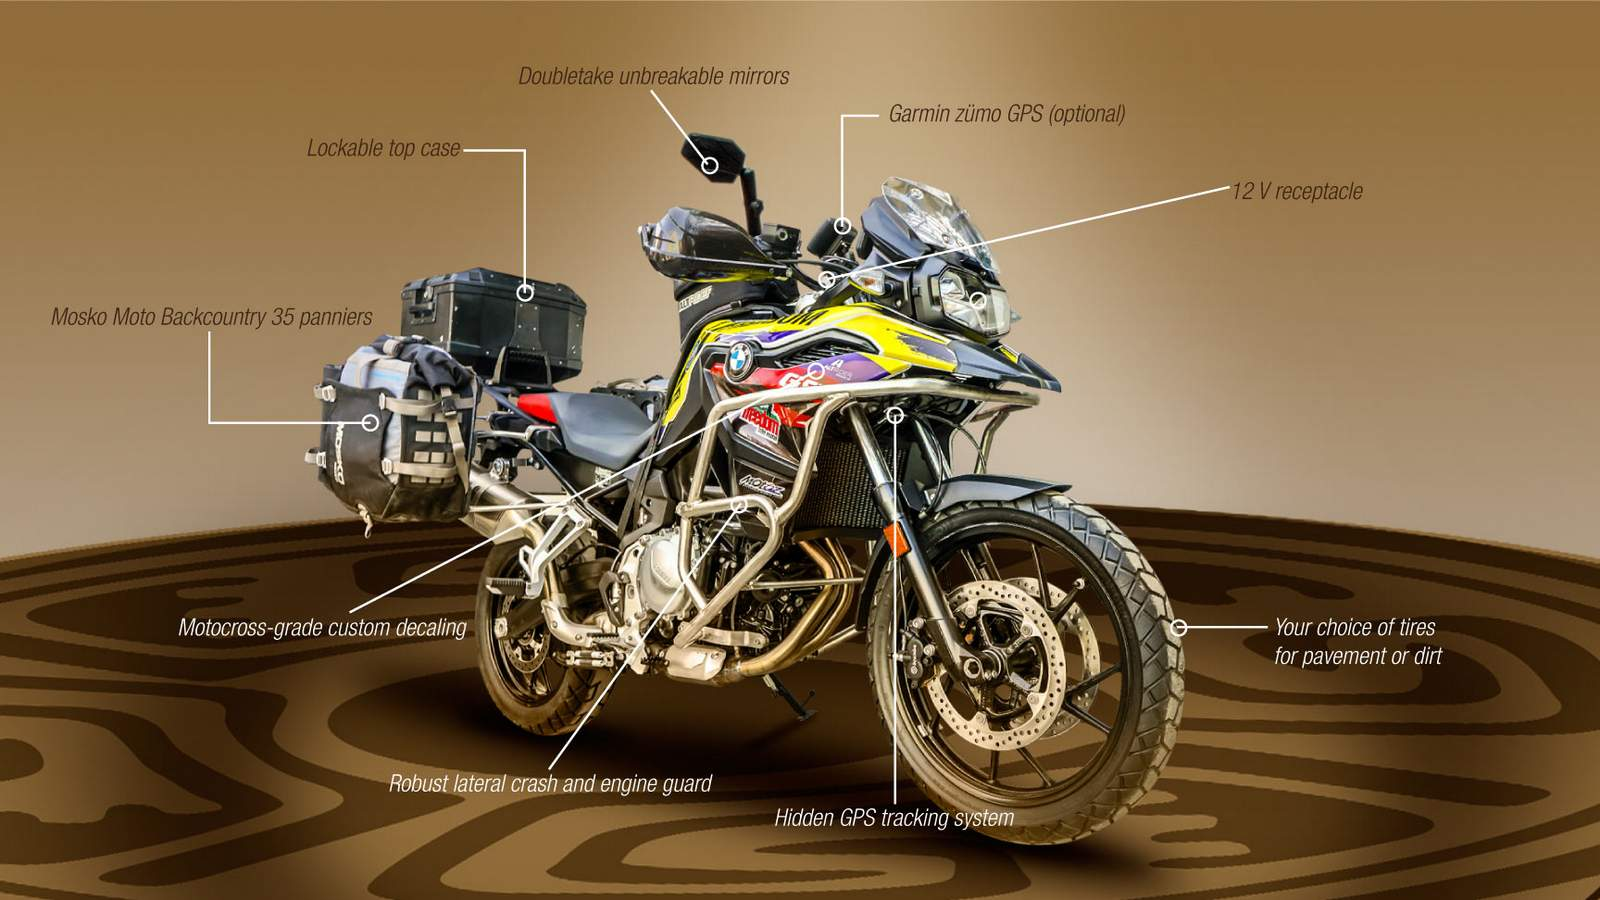 BMW F850GS by Ecuador Freedom Infographic